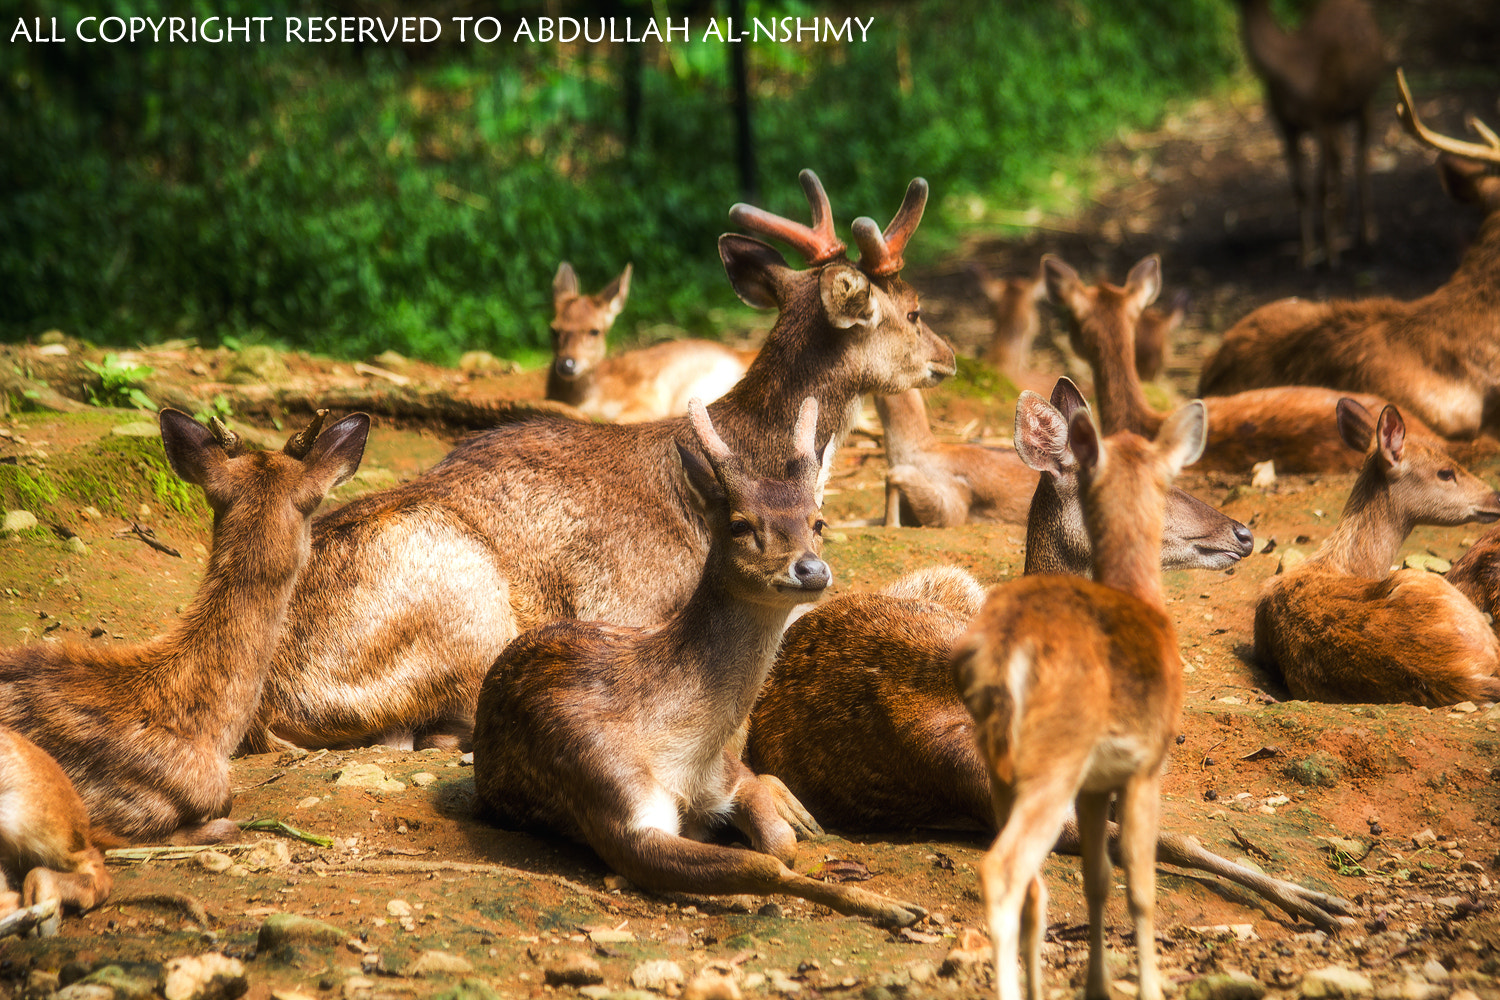 Photograph Deer by ABDULLAH ALNSHMY  on 500px